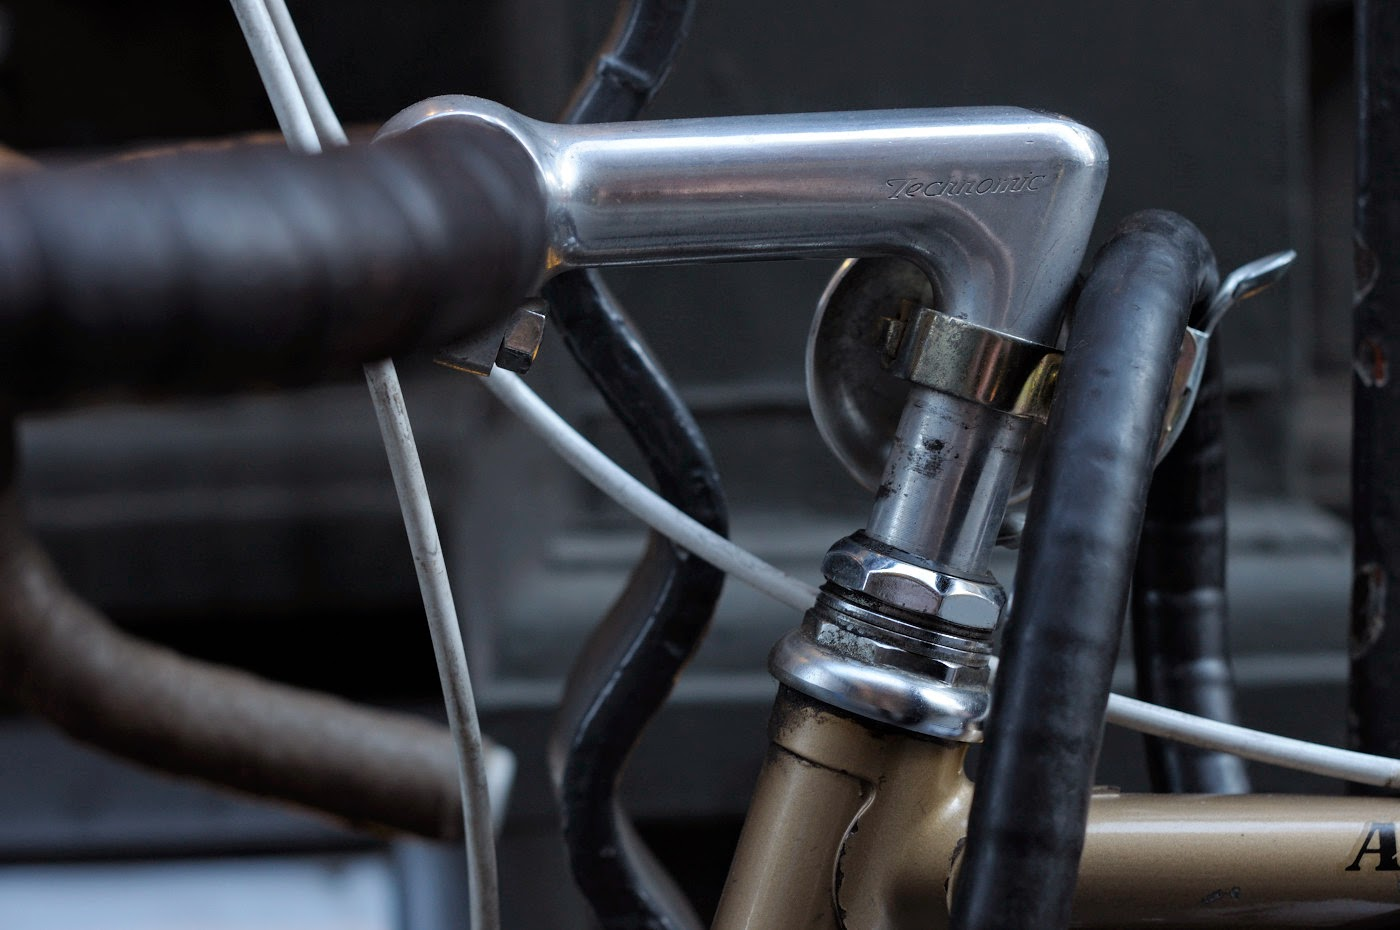 Bespoke, vintage, custom, Tim Macauley, The Biketorialist, The Light Monkey Collective, Melbourne, flinders lane, bicycle, road bike, Apollo, bike, setup, shimano, 600, groupset, technotronic, headstem, headset